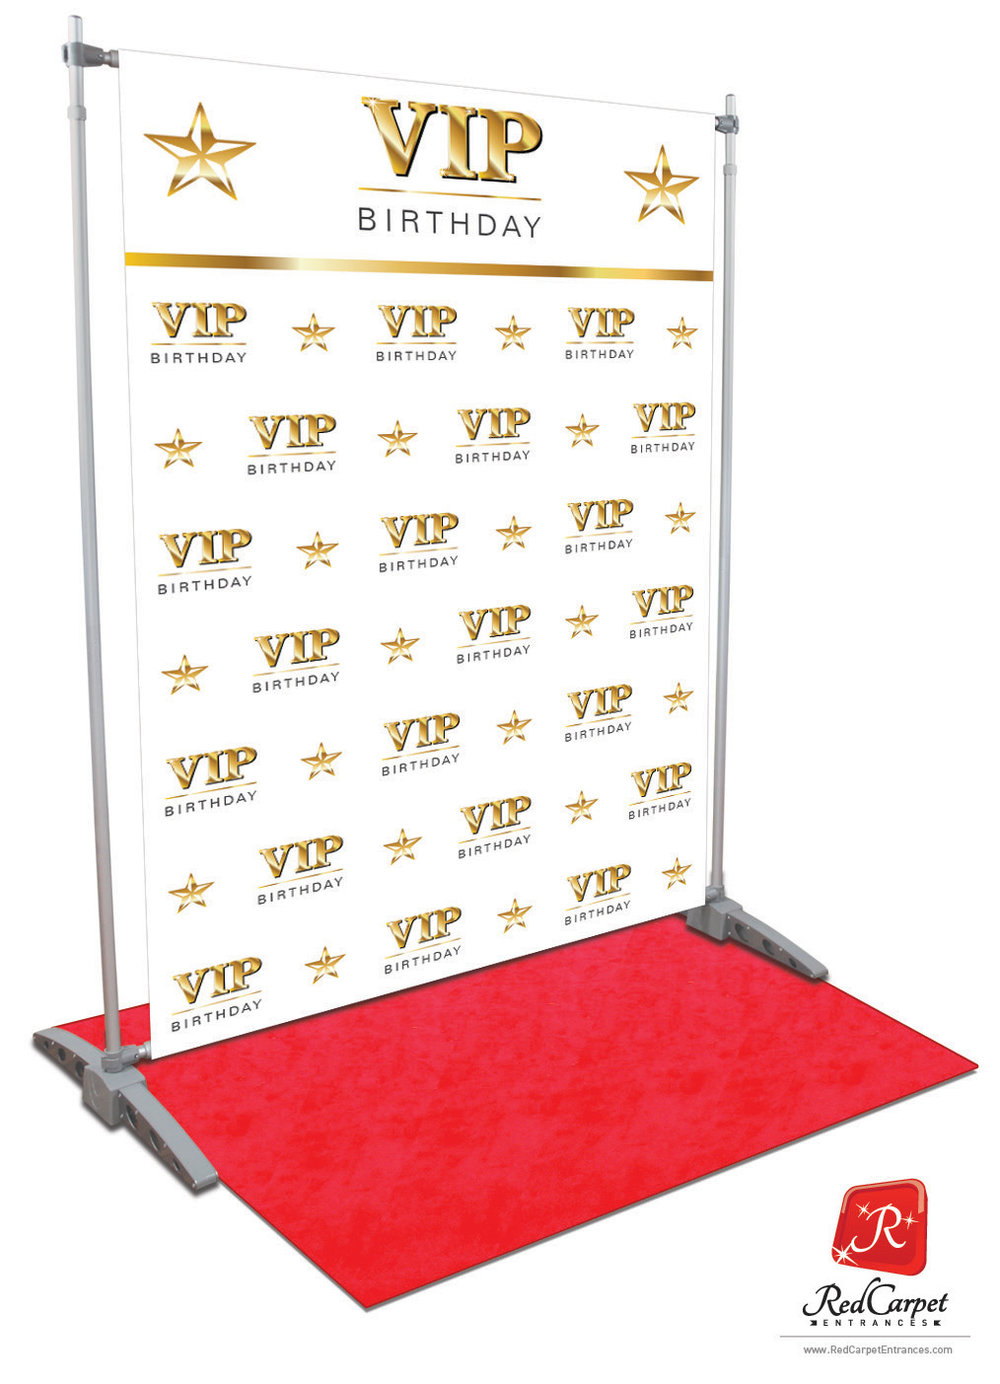 Vip Birthday Backdrop White 5x8 Red Carpet Runner